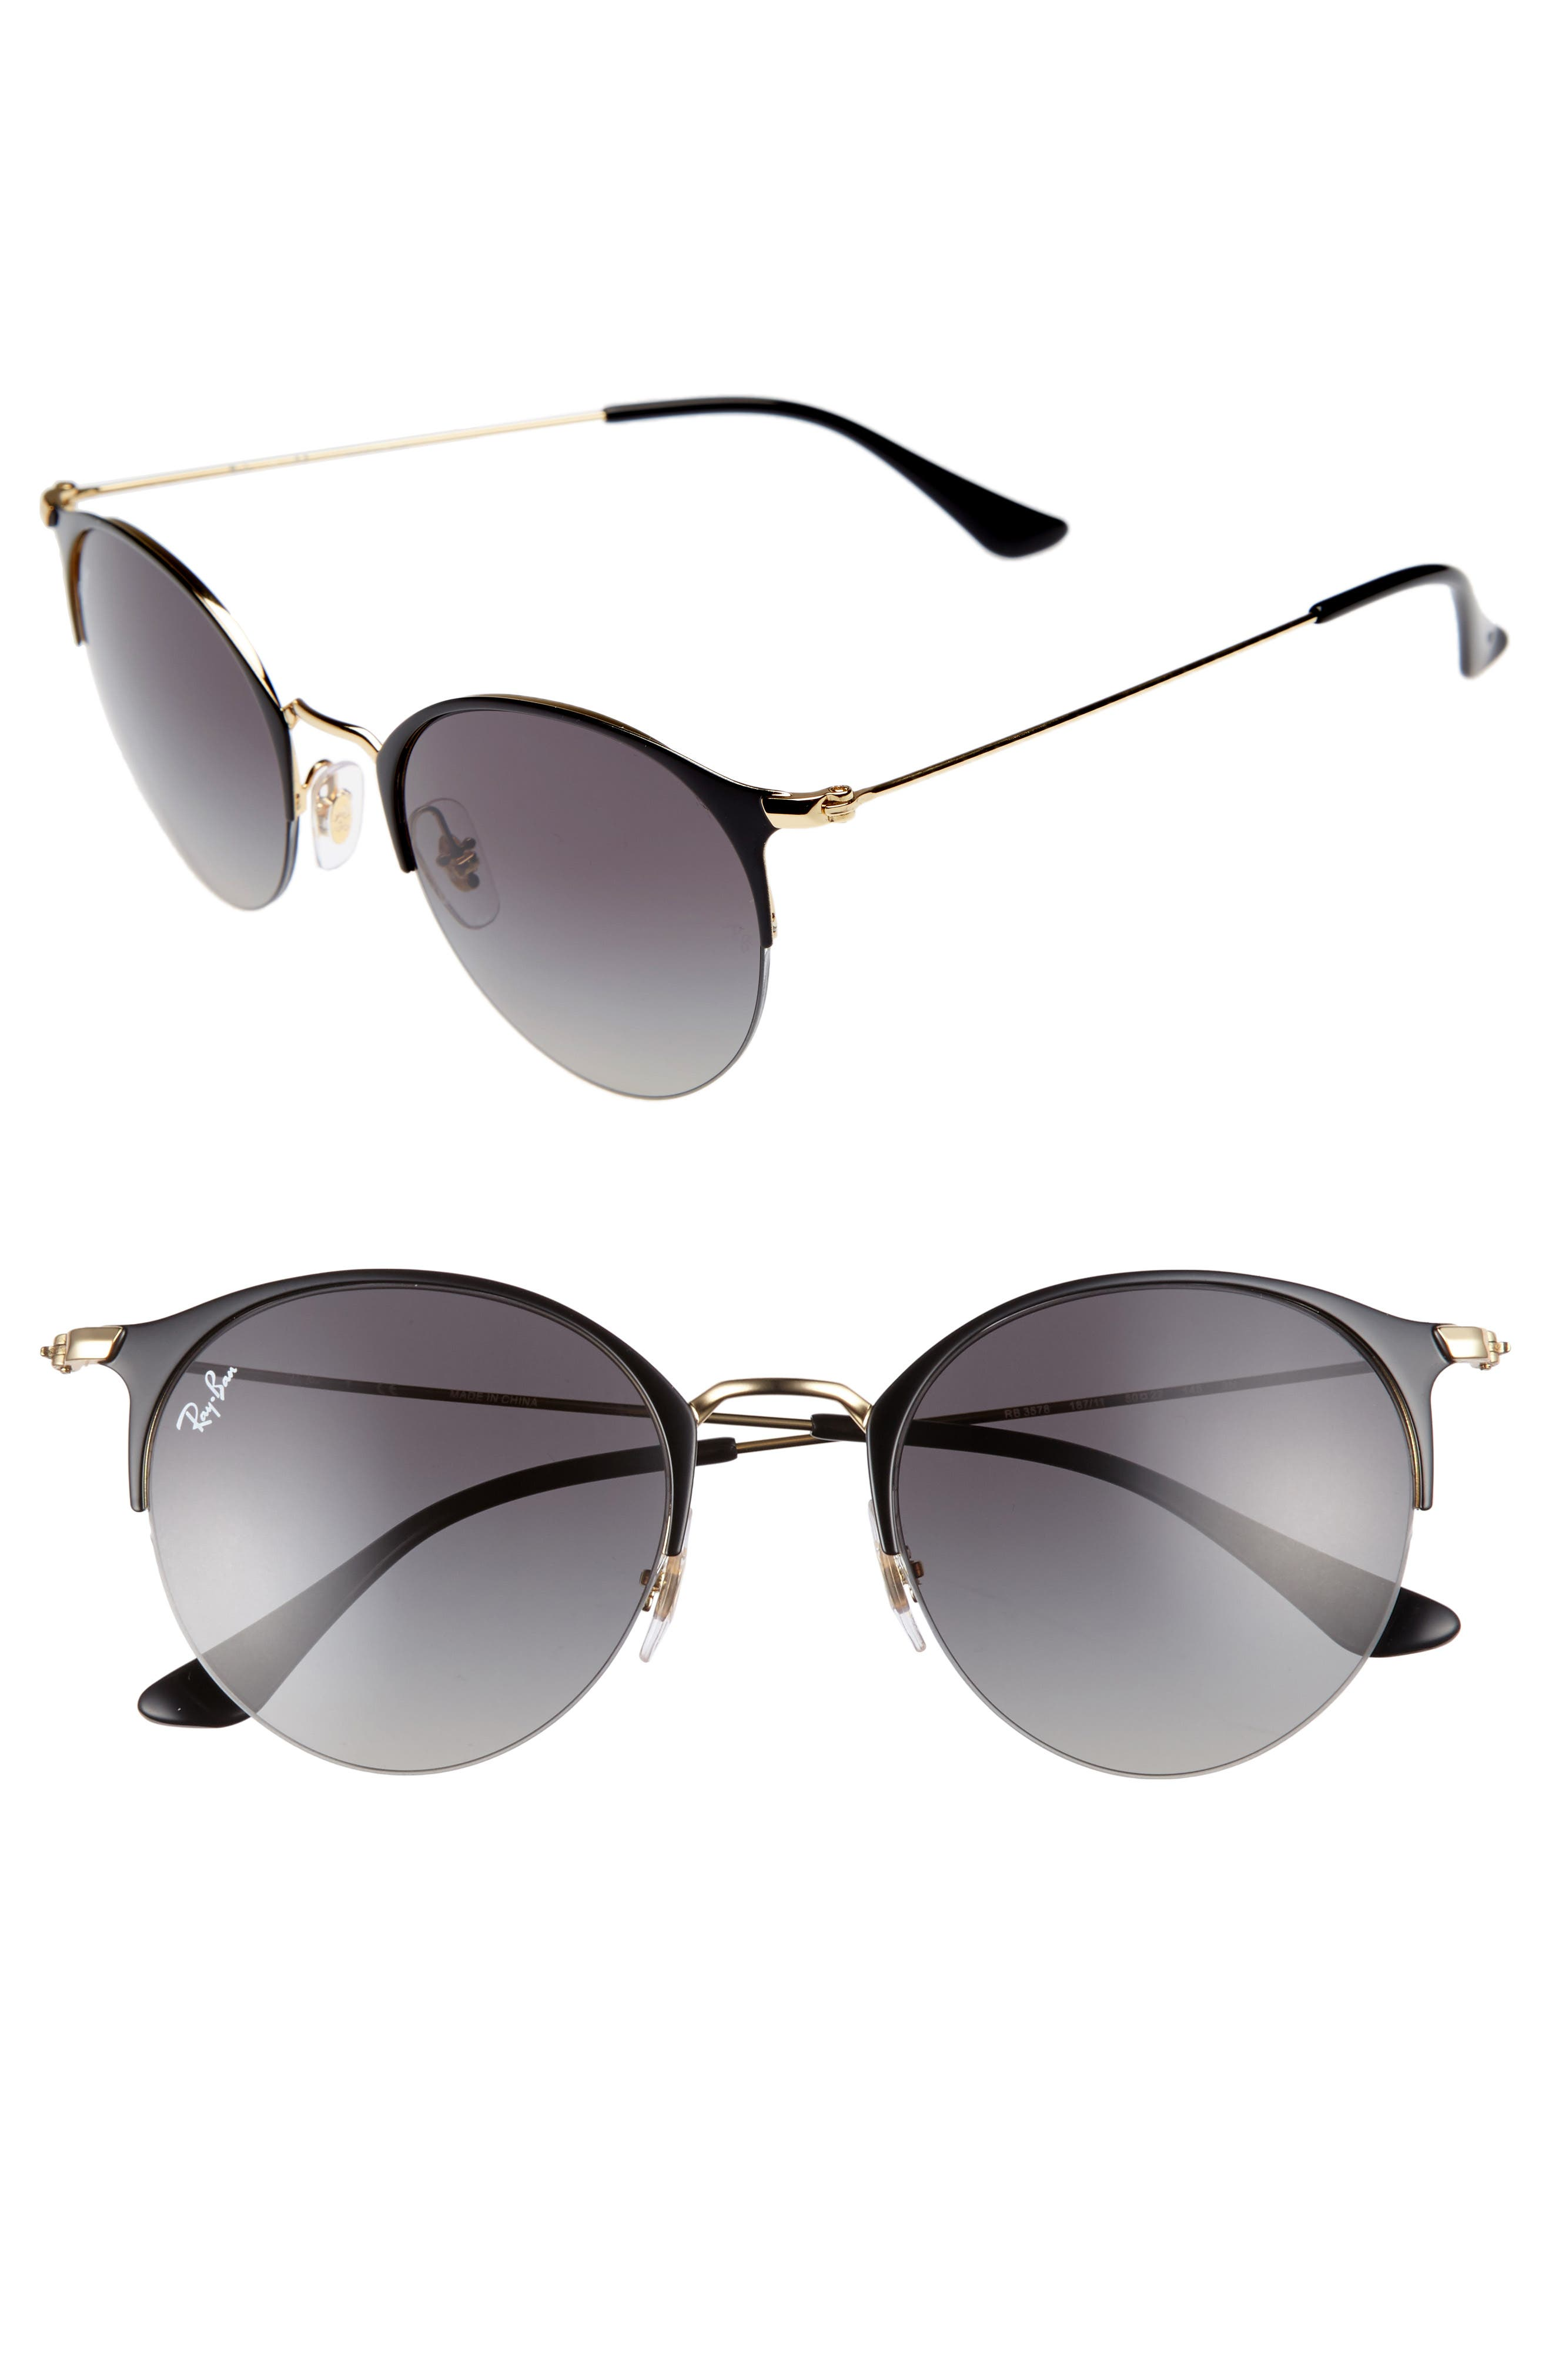 Main Image - Ray-Ban 50mm Round Clubmaster Sunglasses